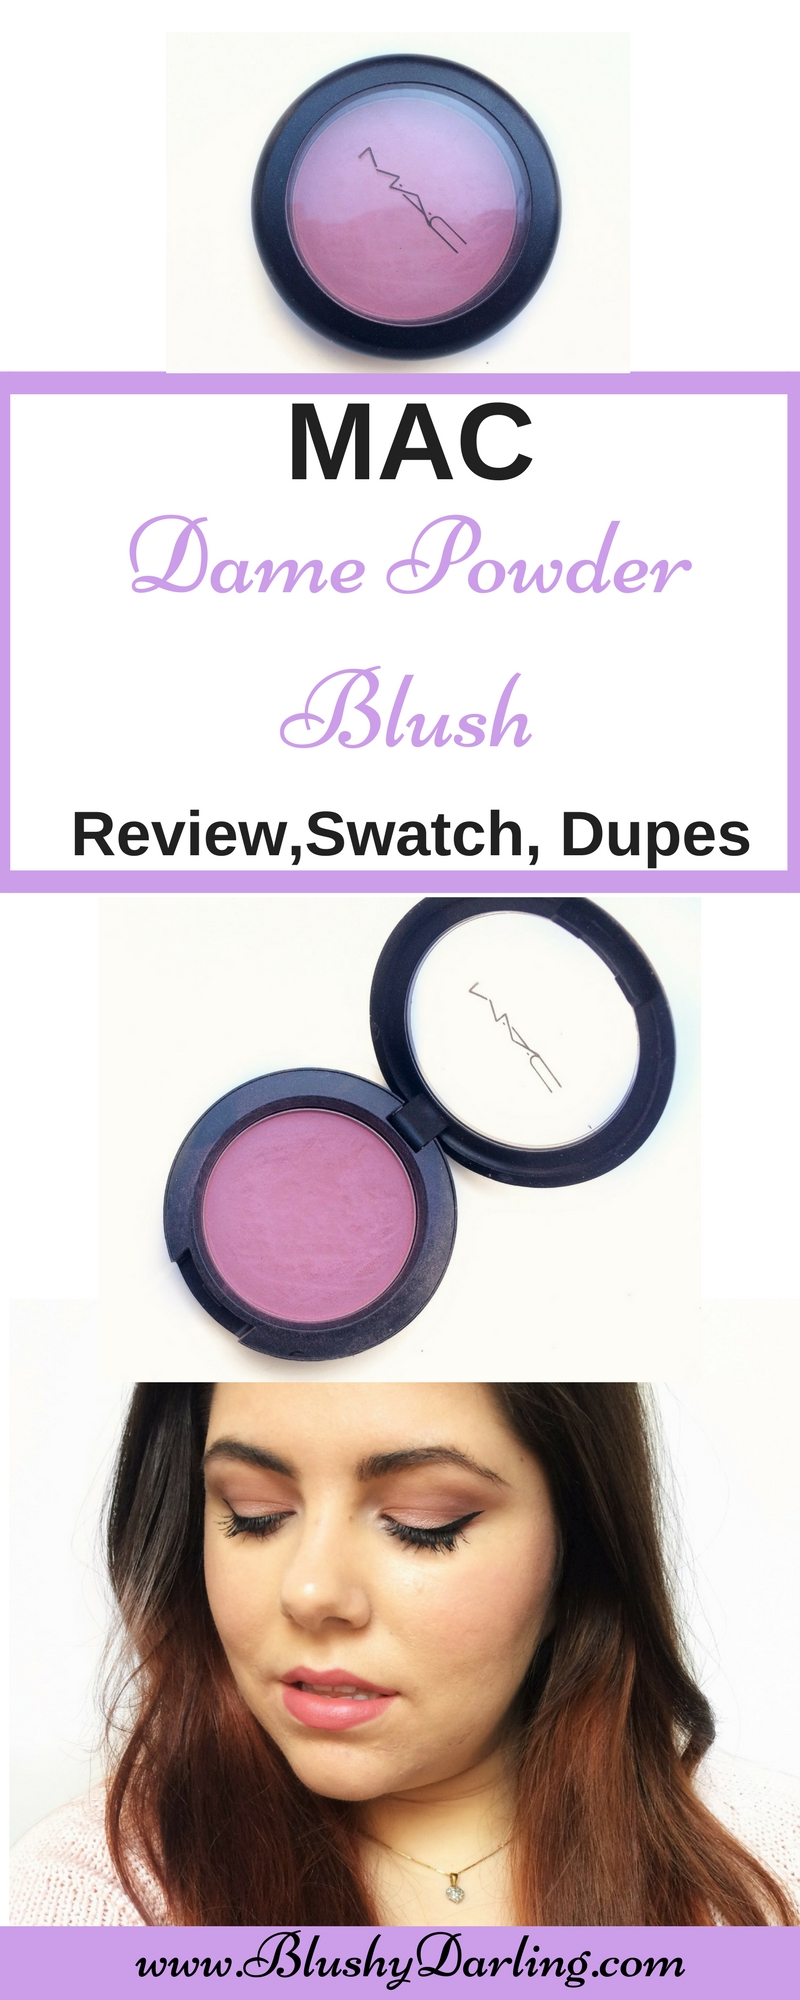 MAC Dame Powder Blush Review dupe swatch